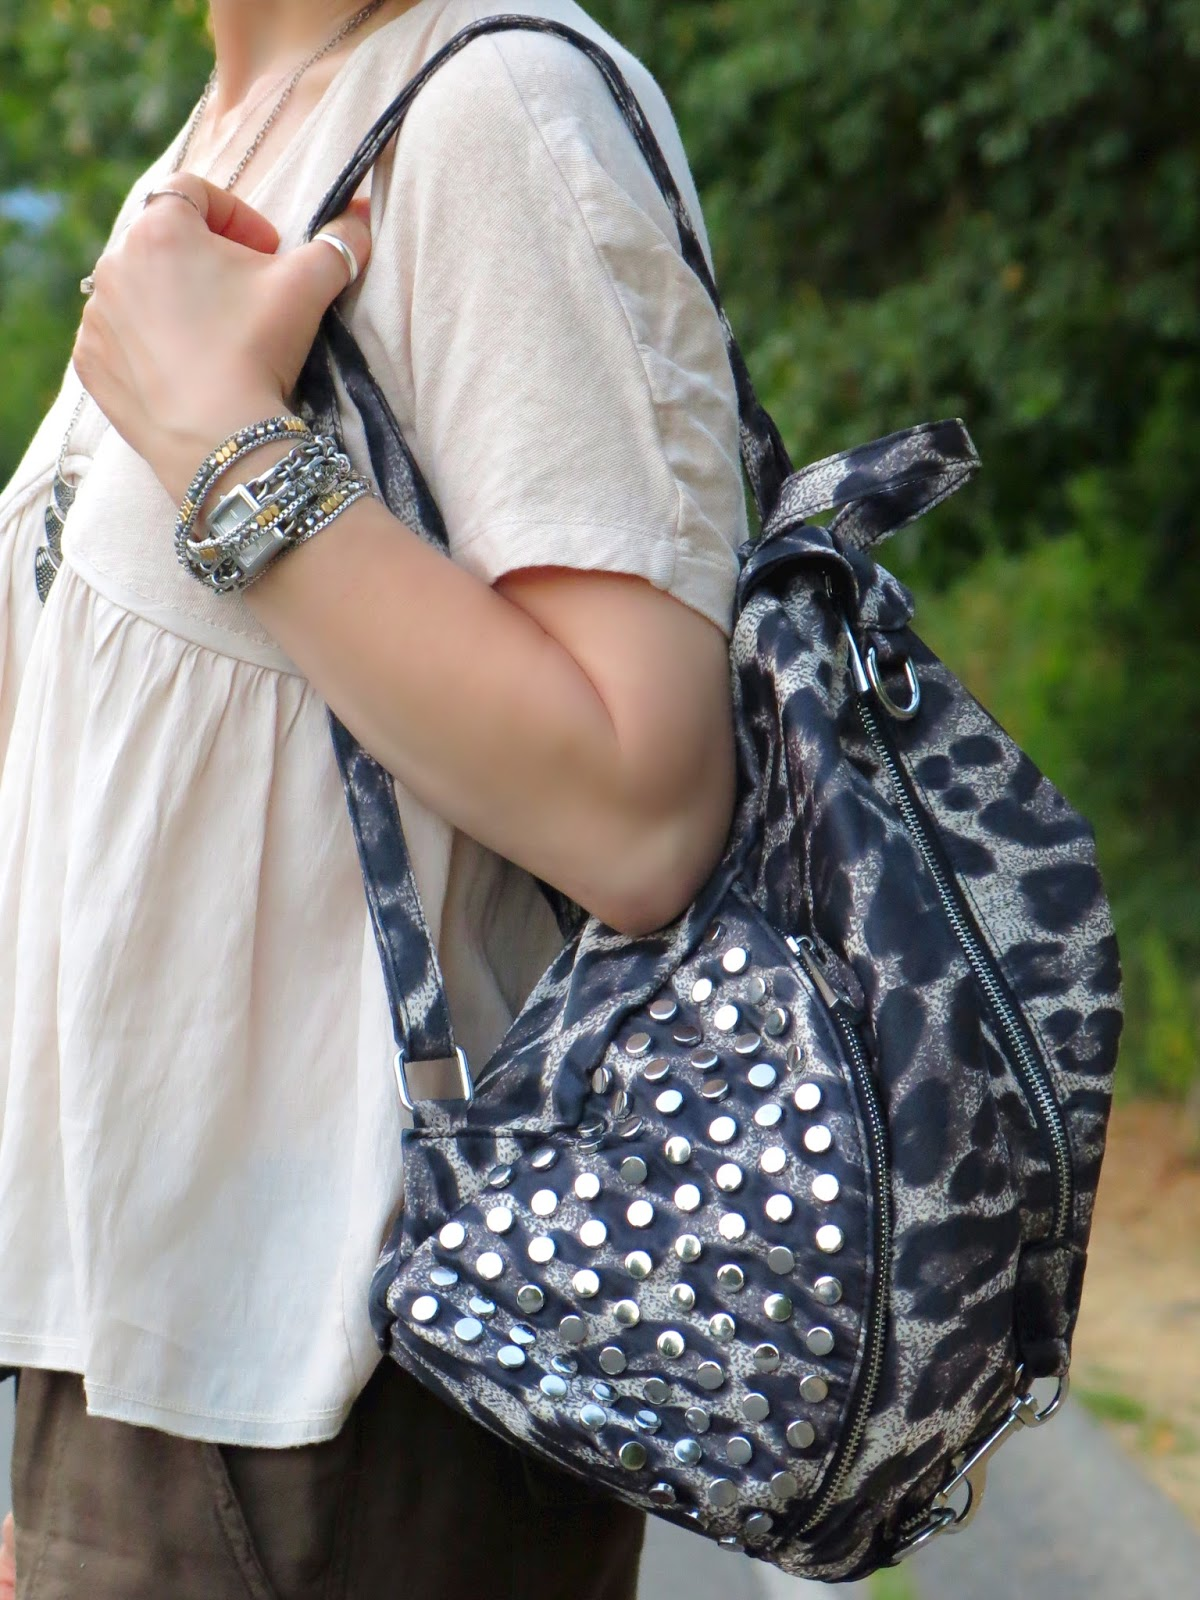 Zara top, leopard backpack, and accessories